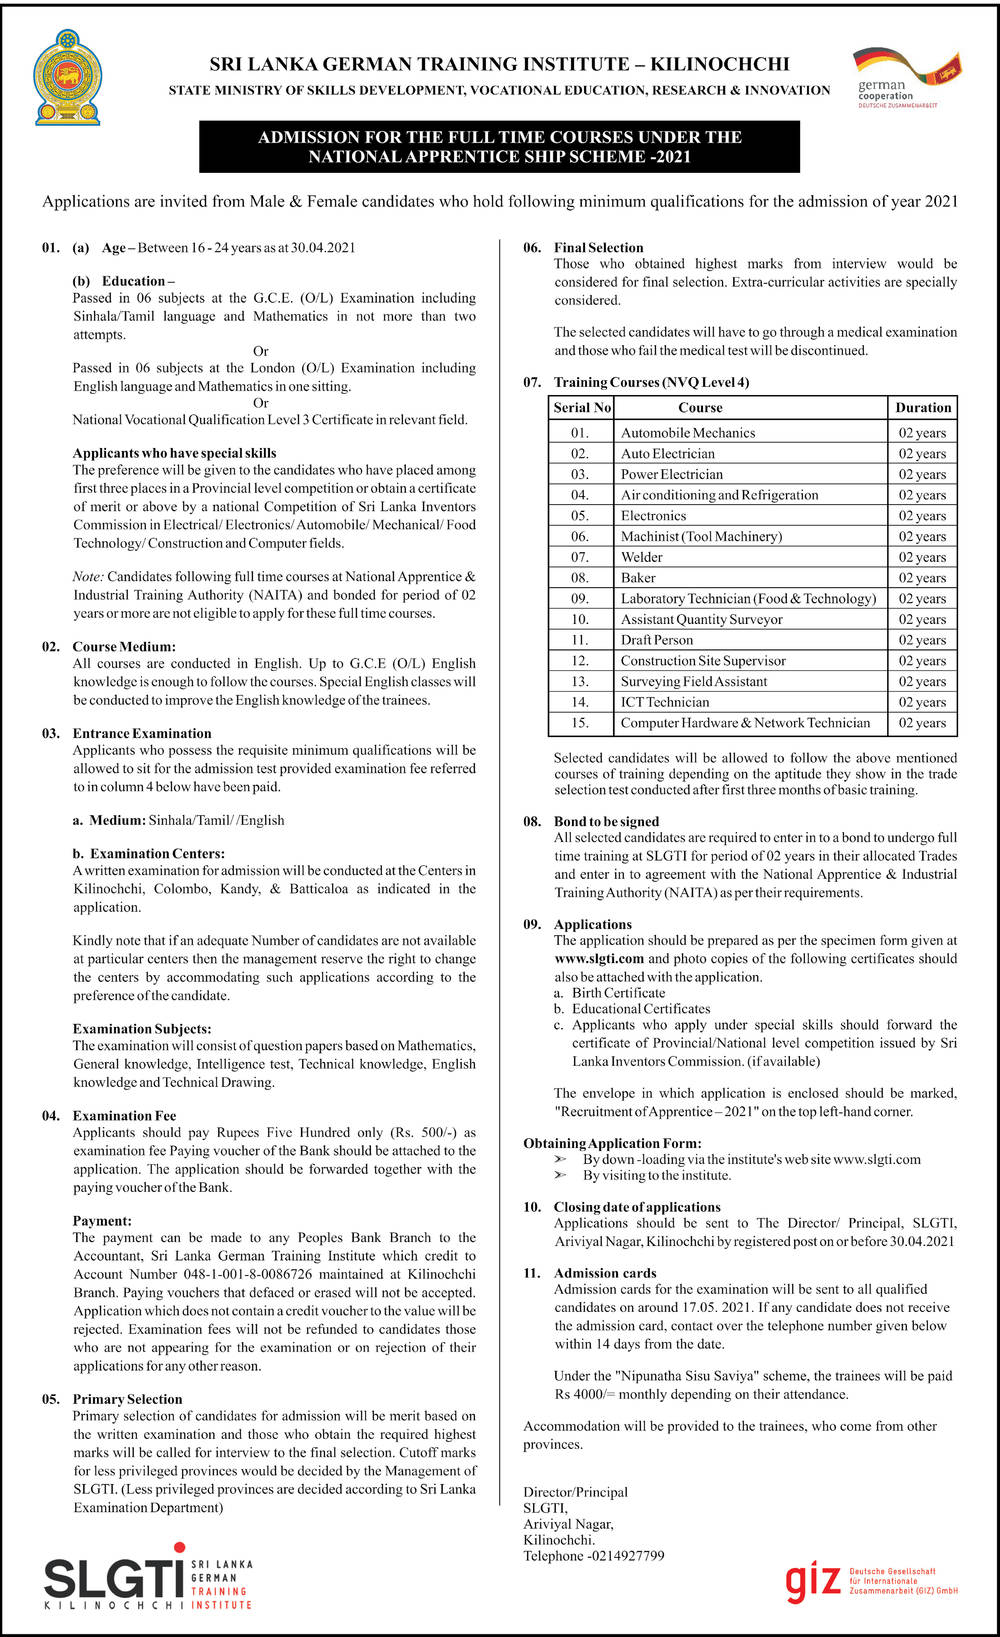 Admission for the Full Time Courses under the National Apprentice Ship Scheme (2021) - Sri Lanka German Training Institute